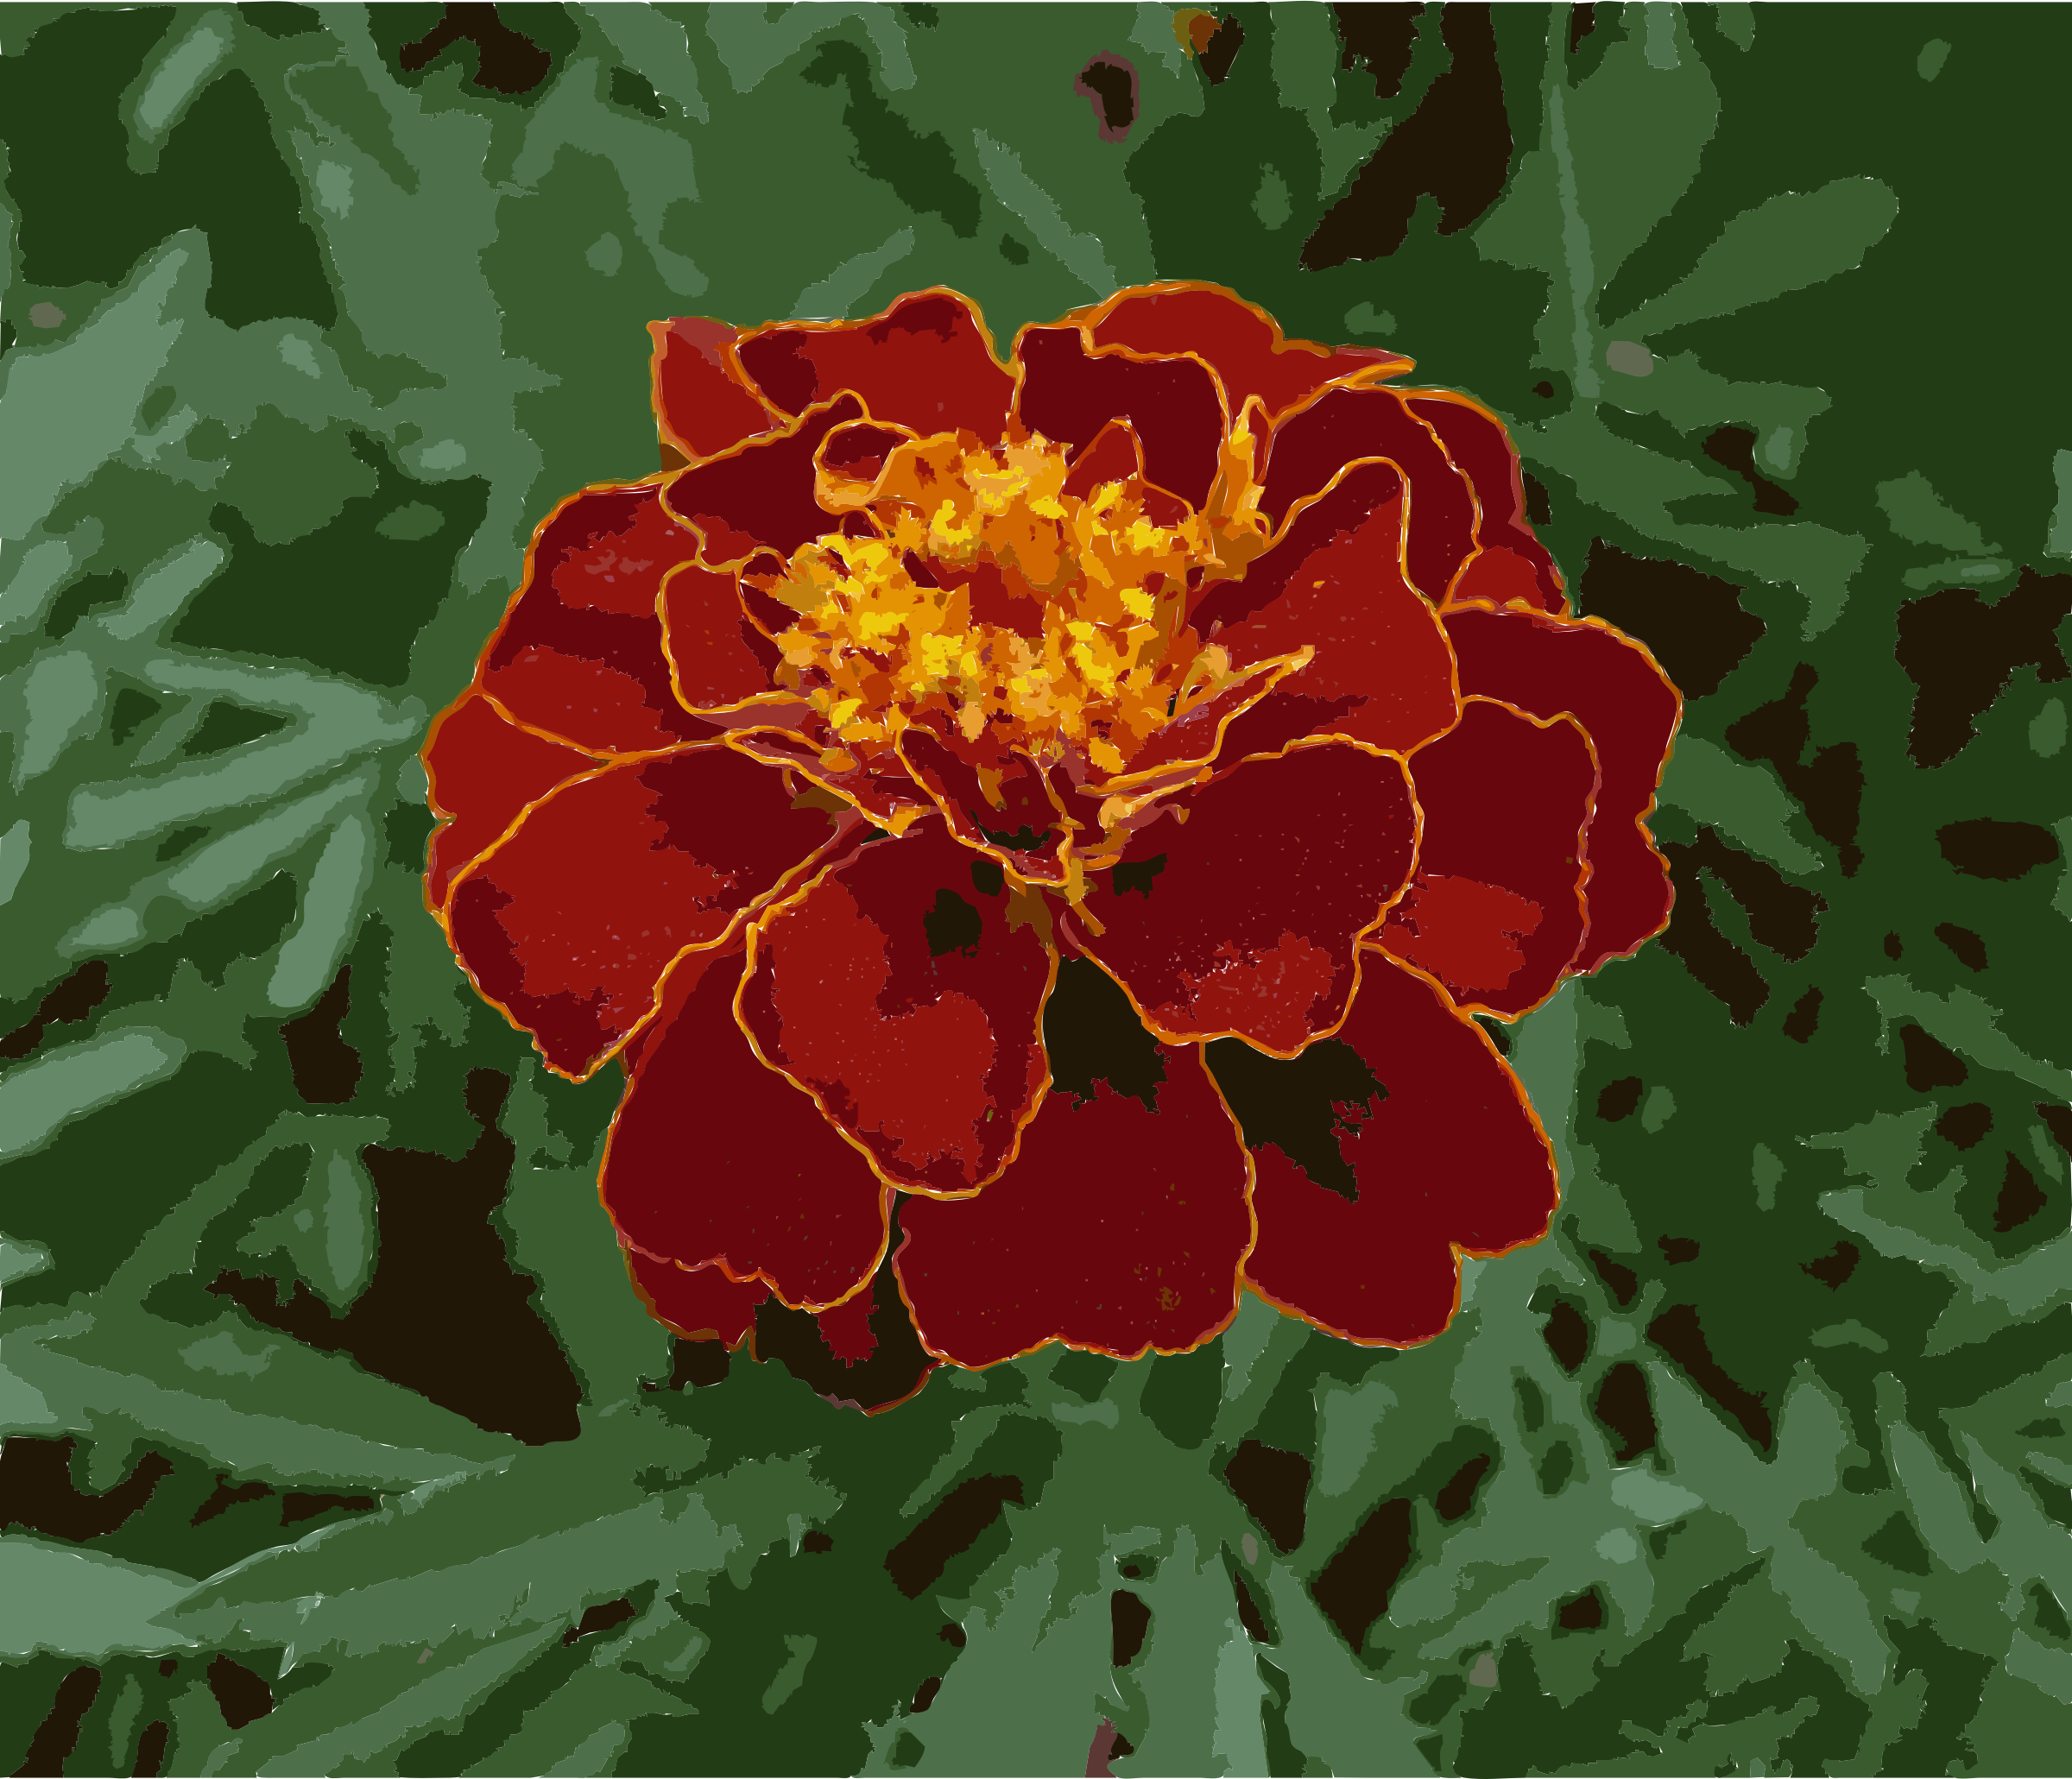 French marigold garden 2009 G1 by 5muinh+48begsmj9hxug